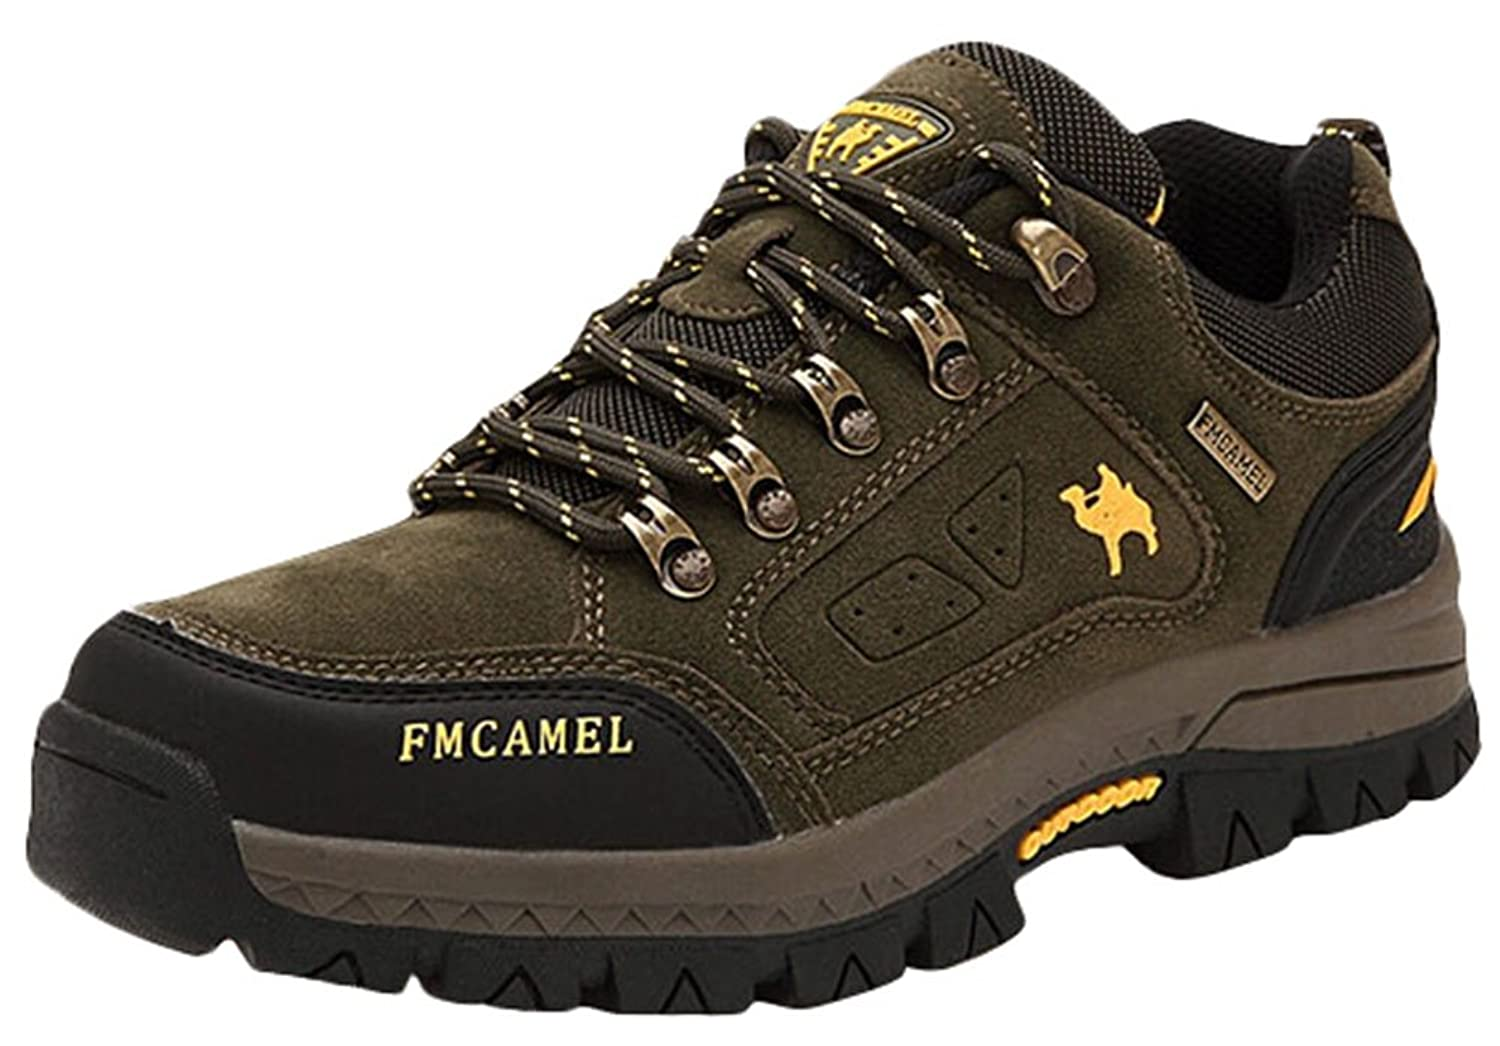 Ace Men's Waterproof High-top Mountain Shoes Anti-skid Hiking Boots Plus Size